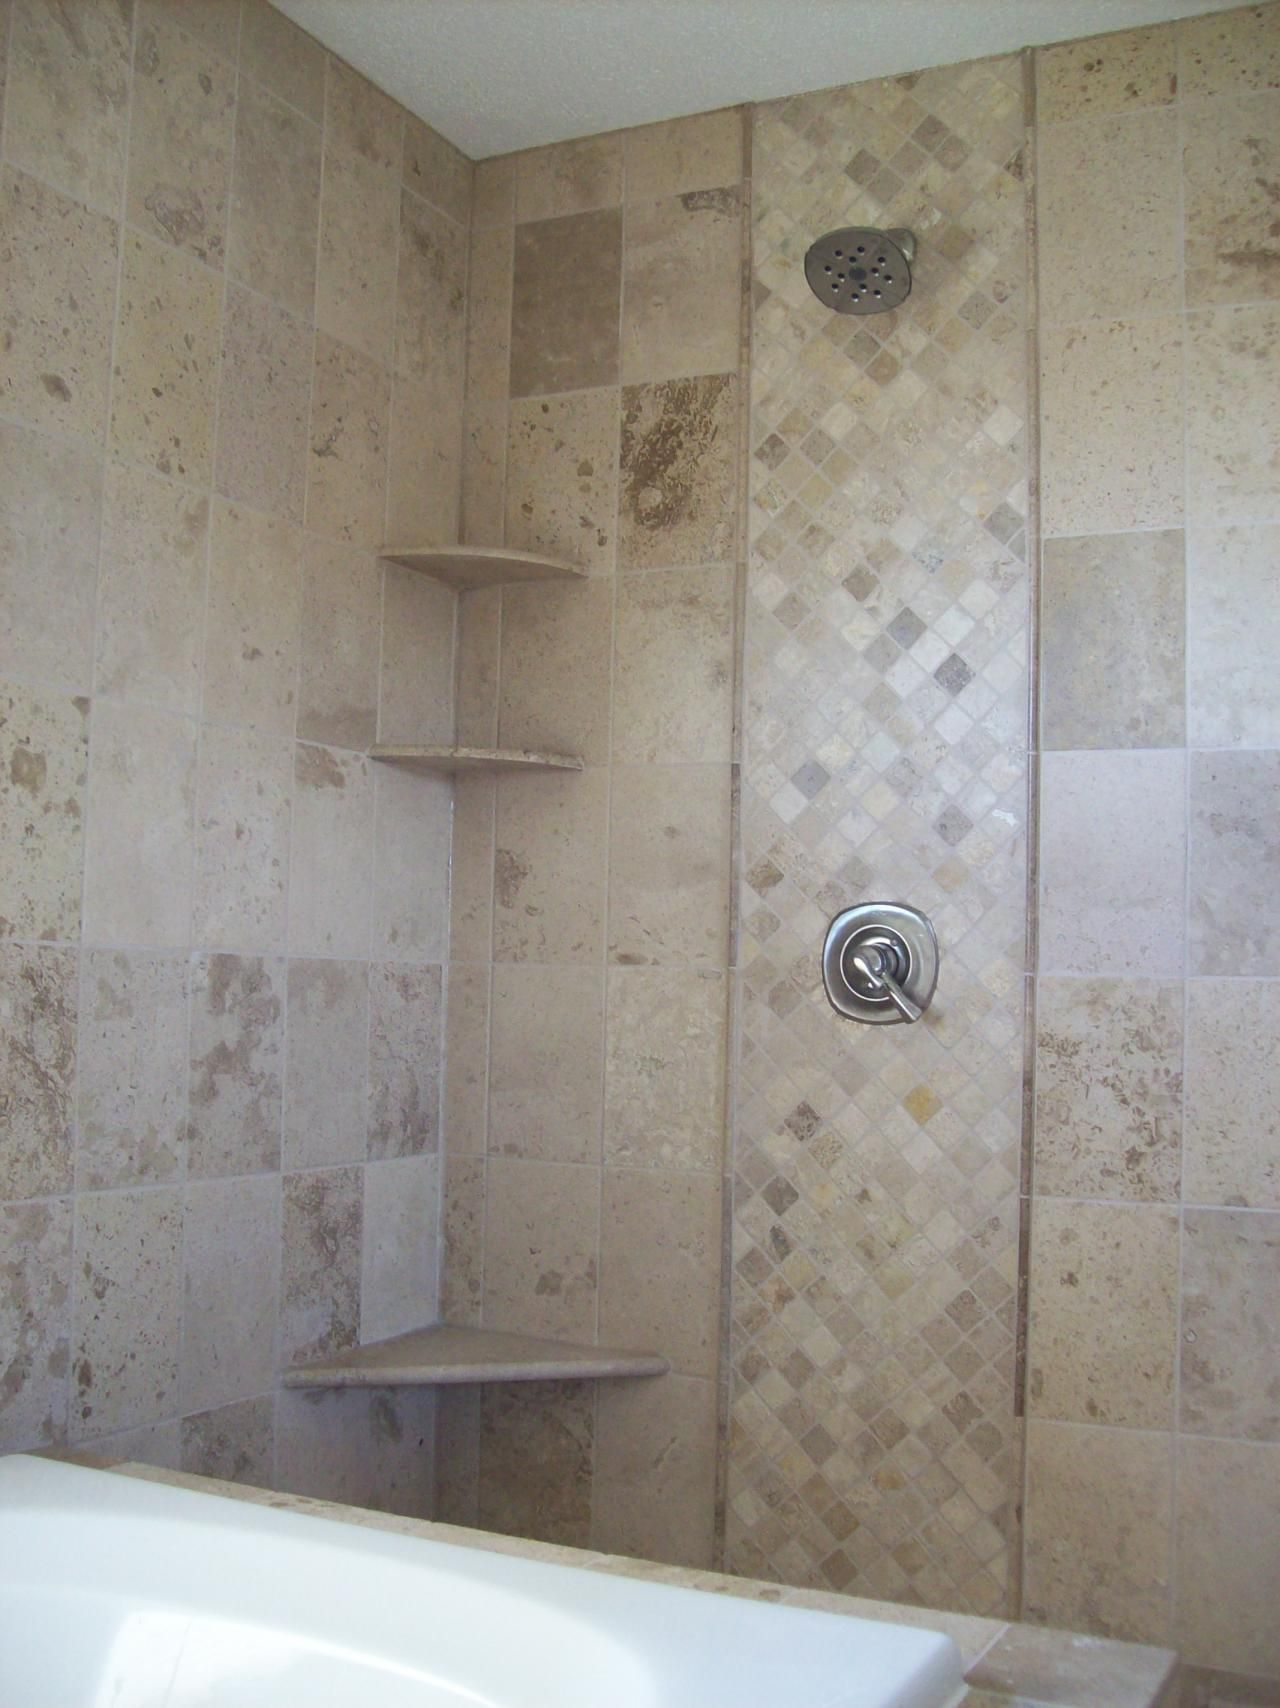 Bathroom Accent Tile Design Ideas ~ Natural stone tile shower and tub surround flooring